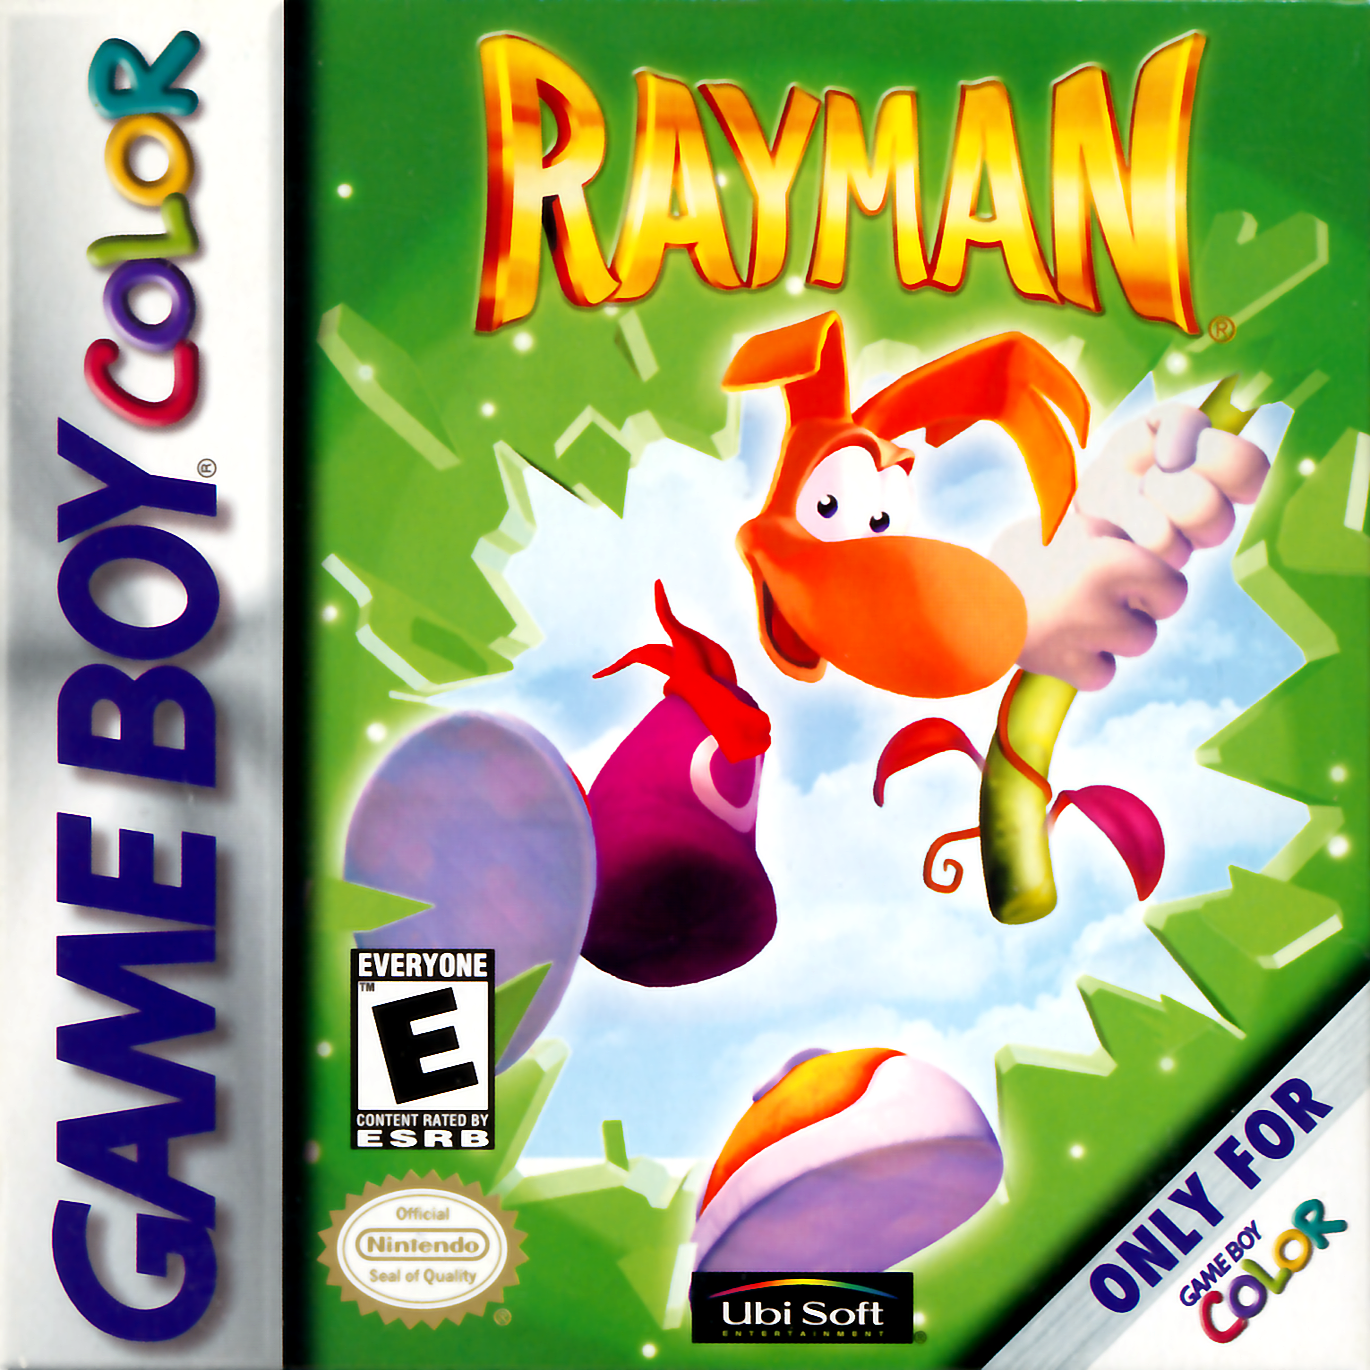 Game boy color online games - Play Rayman Nintendo Game Boy Color Online